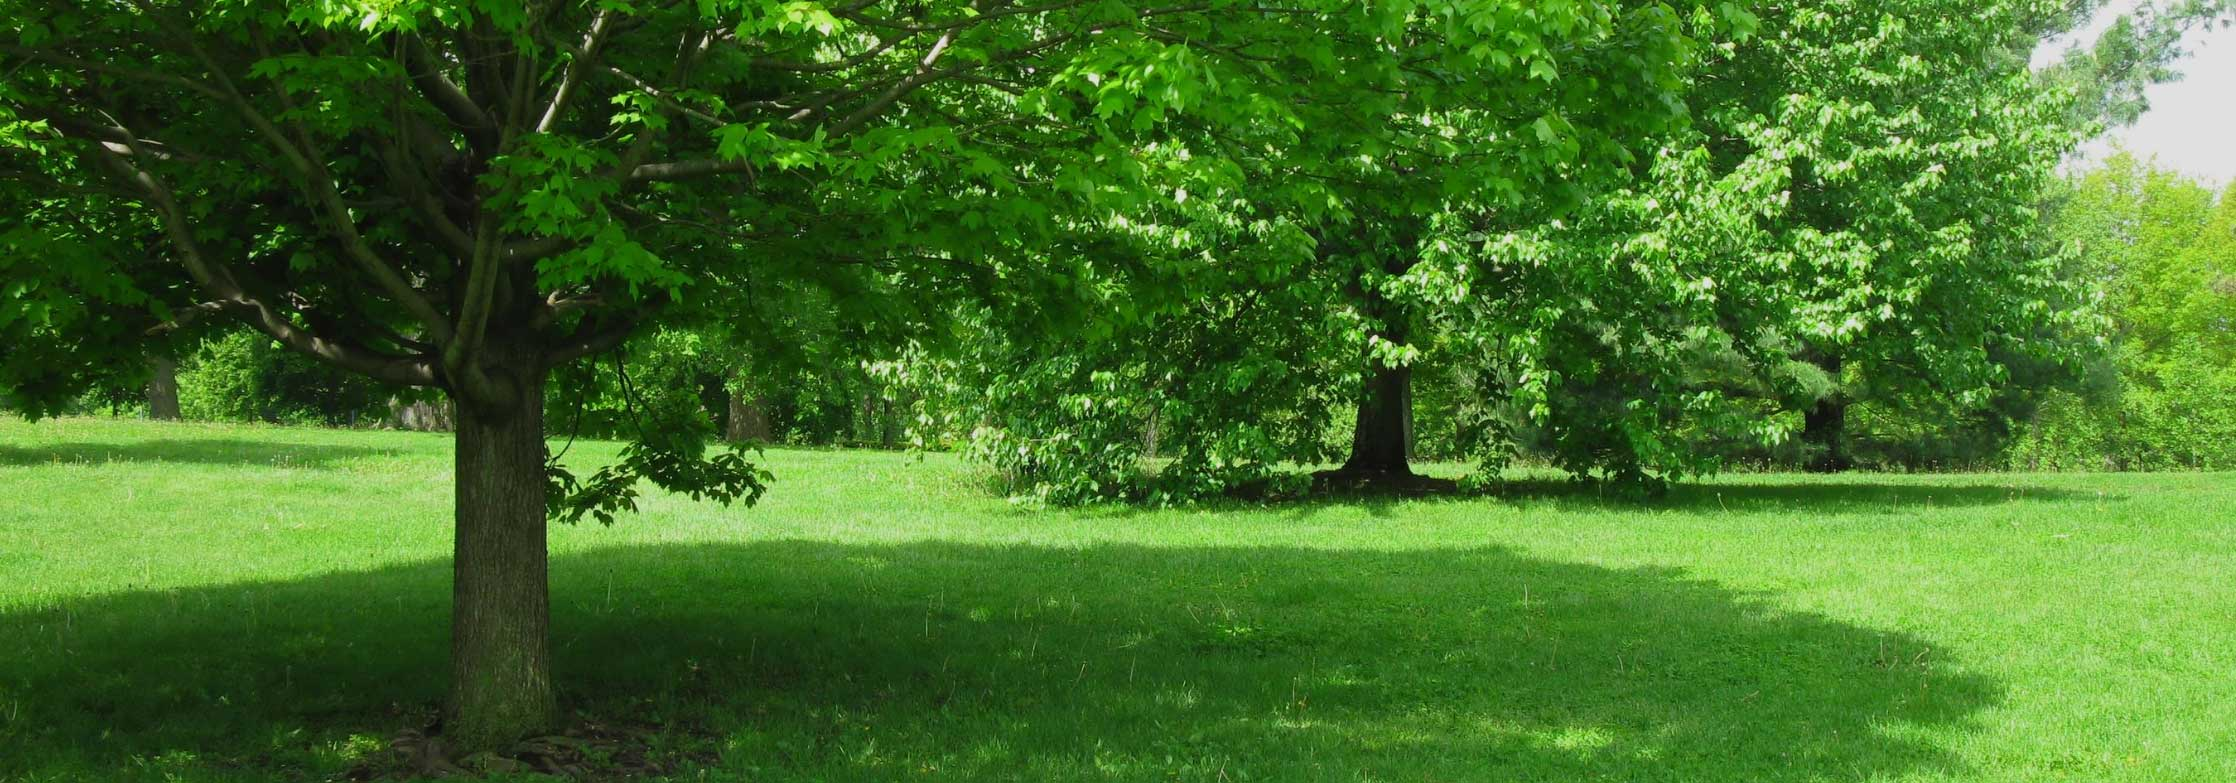 Tree care services and tips for shade trees